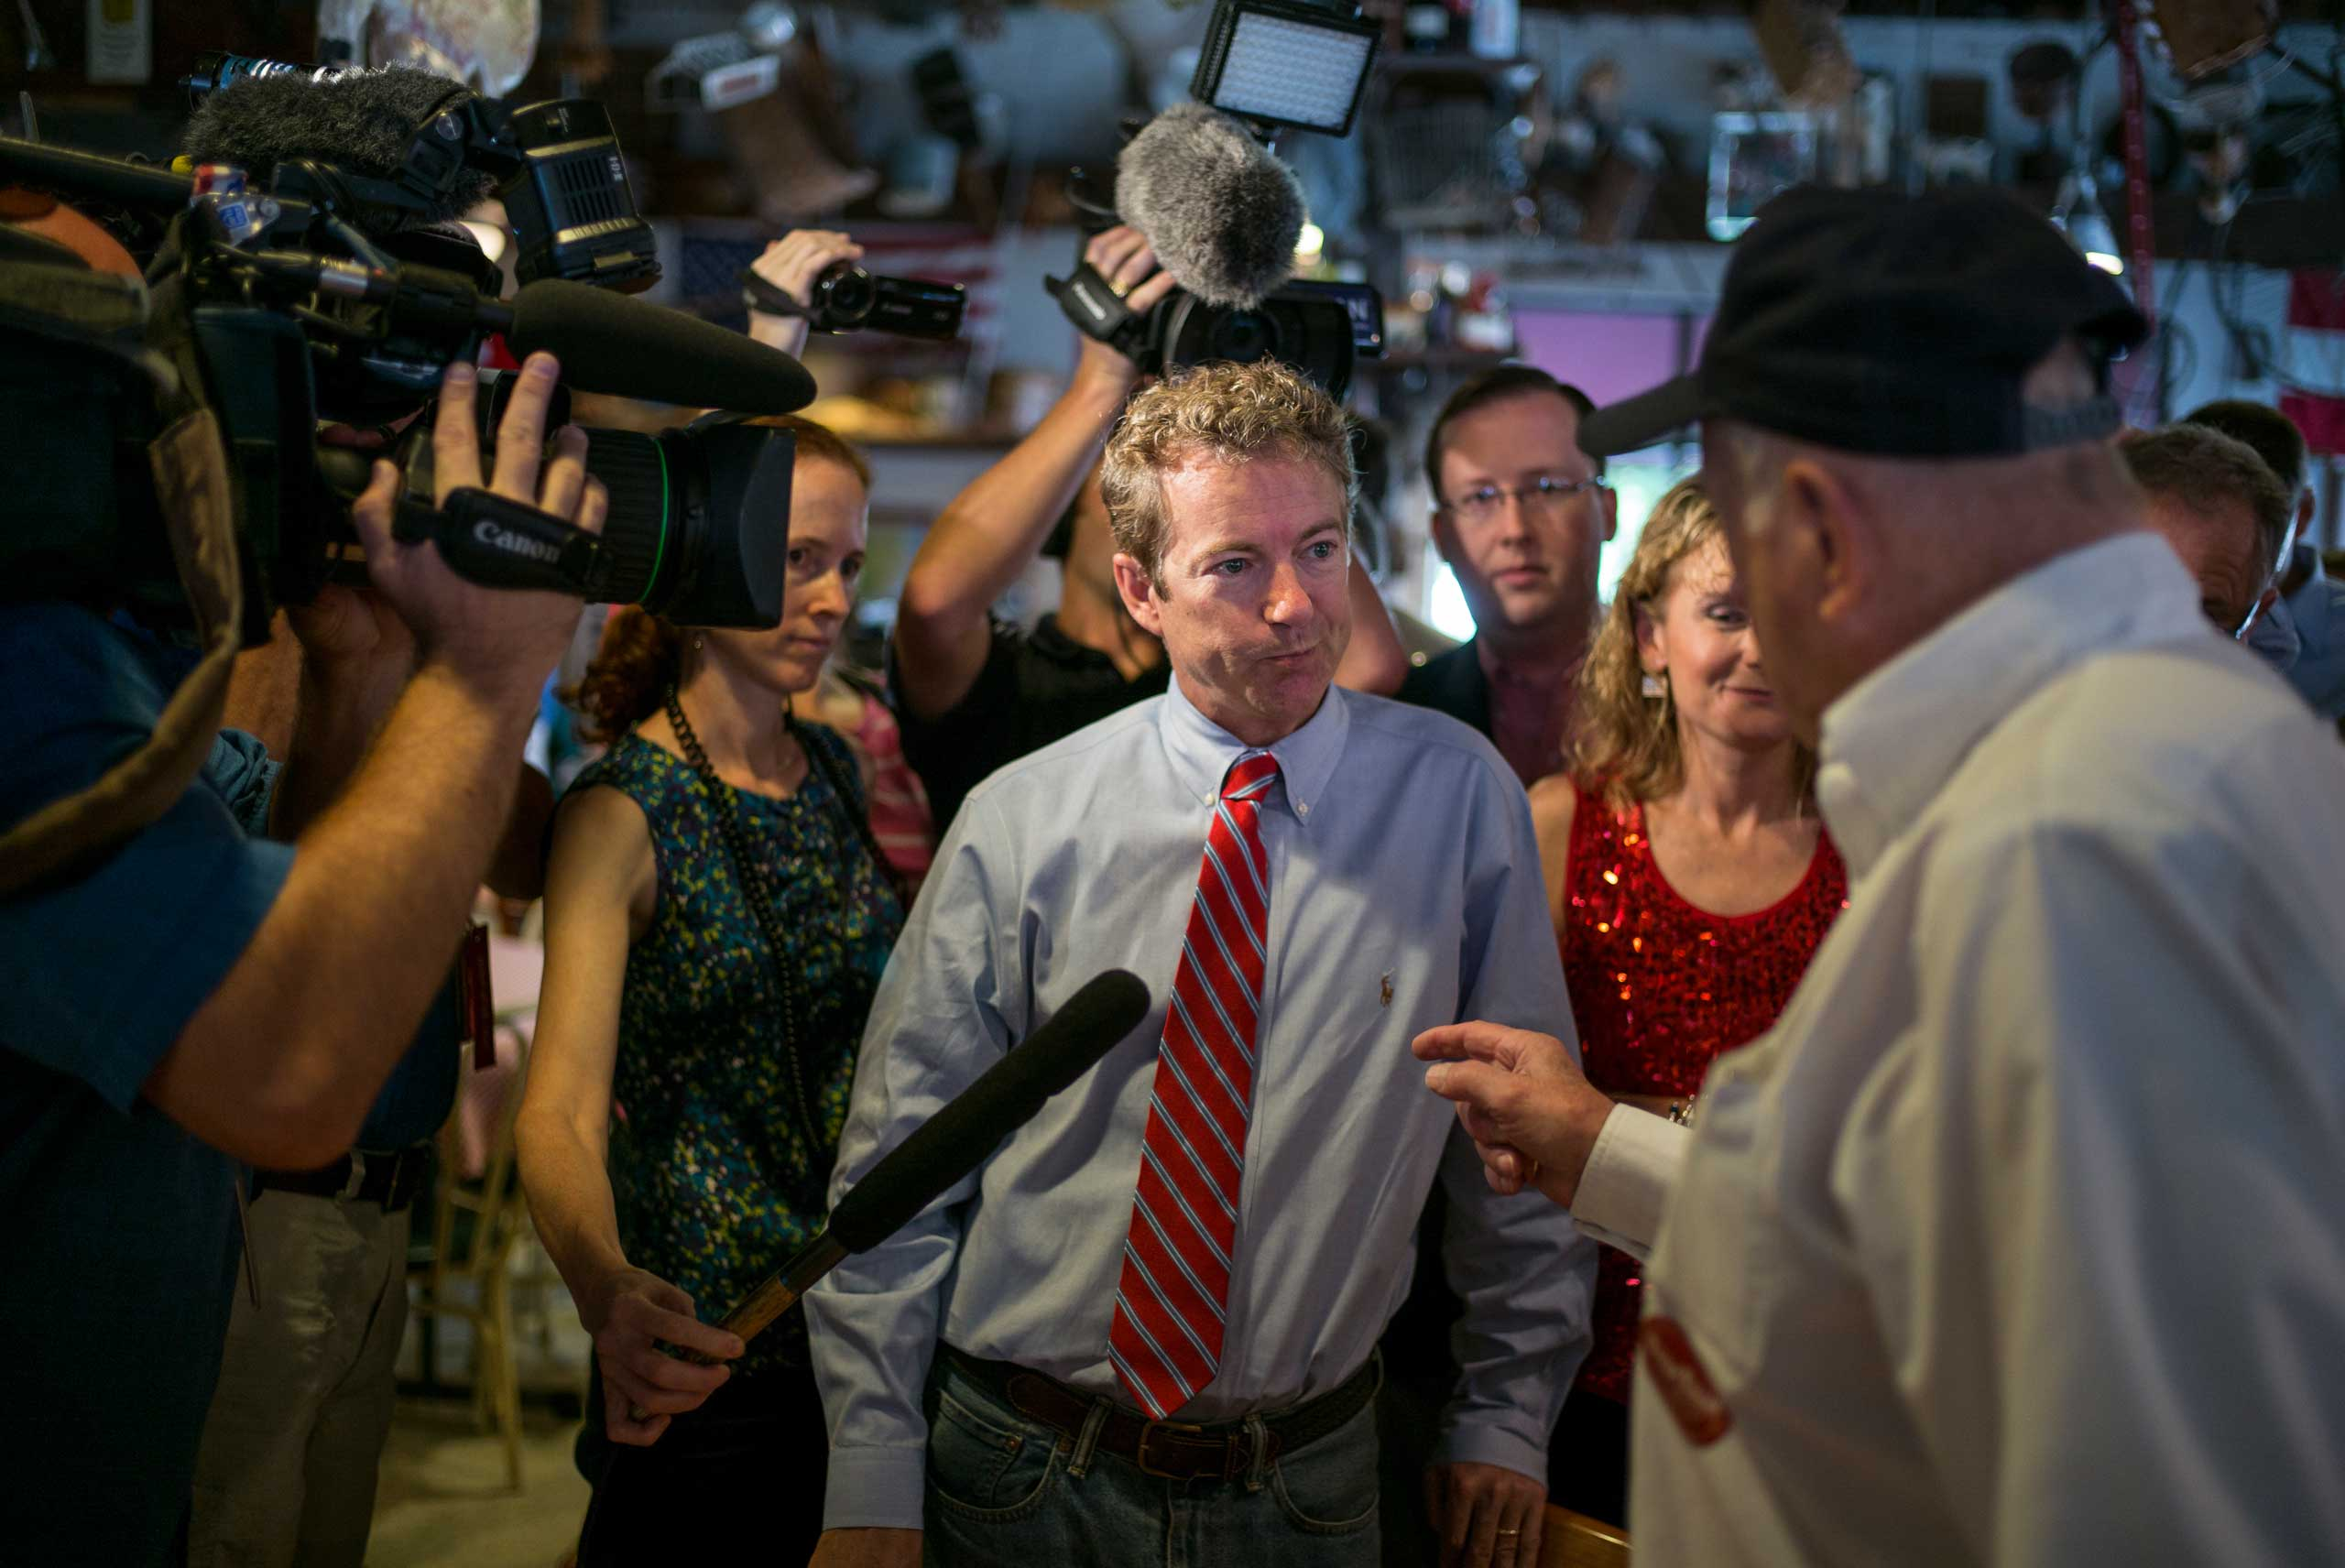 Senator Rand Paul and GOP Senatorial candidate Thom Tillis meet with diners at Big Ed's restaurant in Raleigh, N.C. on Oct. 1st, 2014.